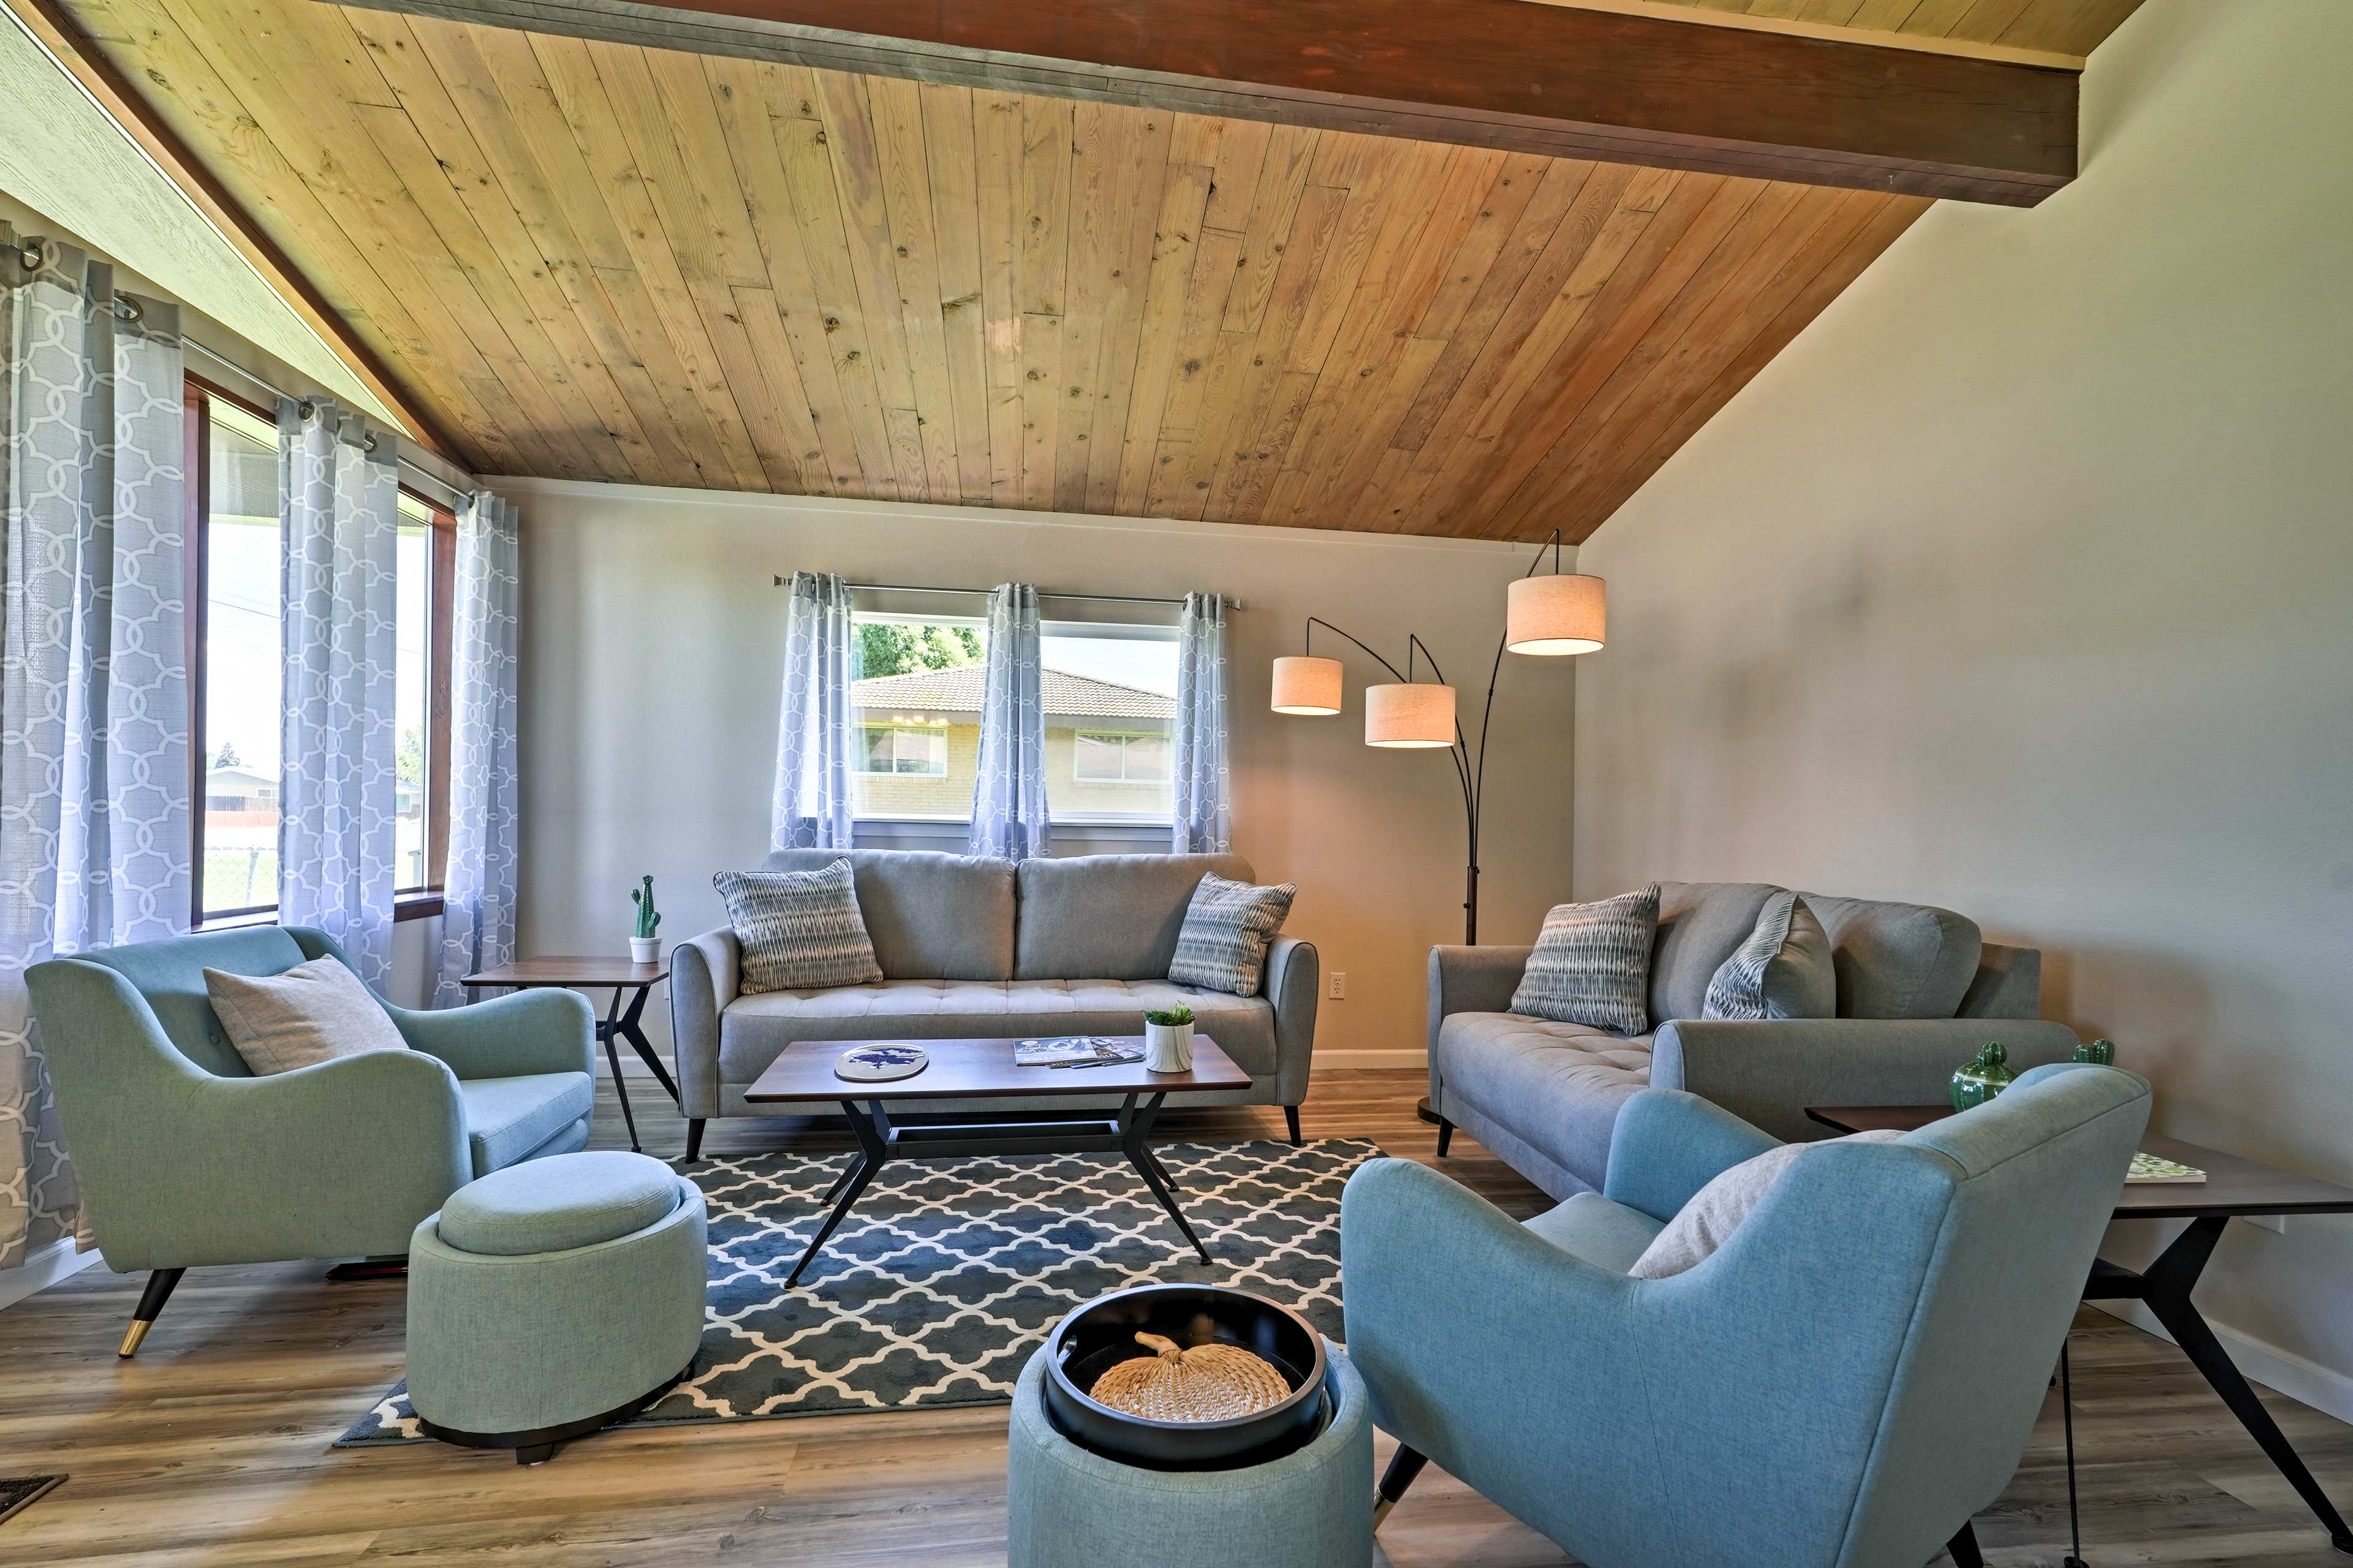 This home is surrounded by outdoor recreation, farmers market, and family fun.